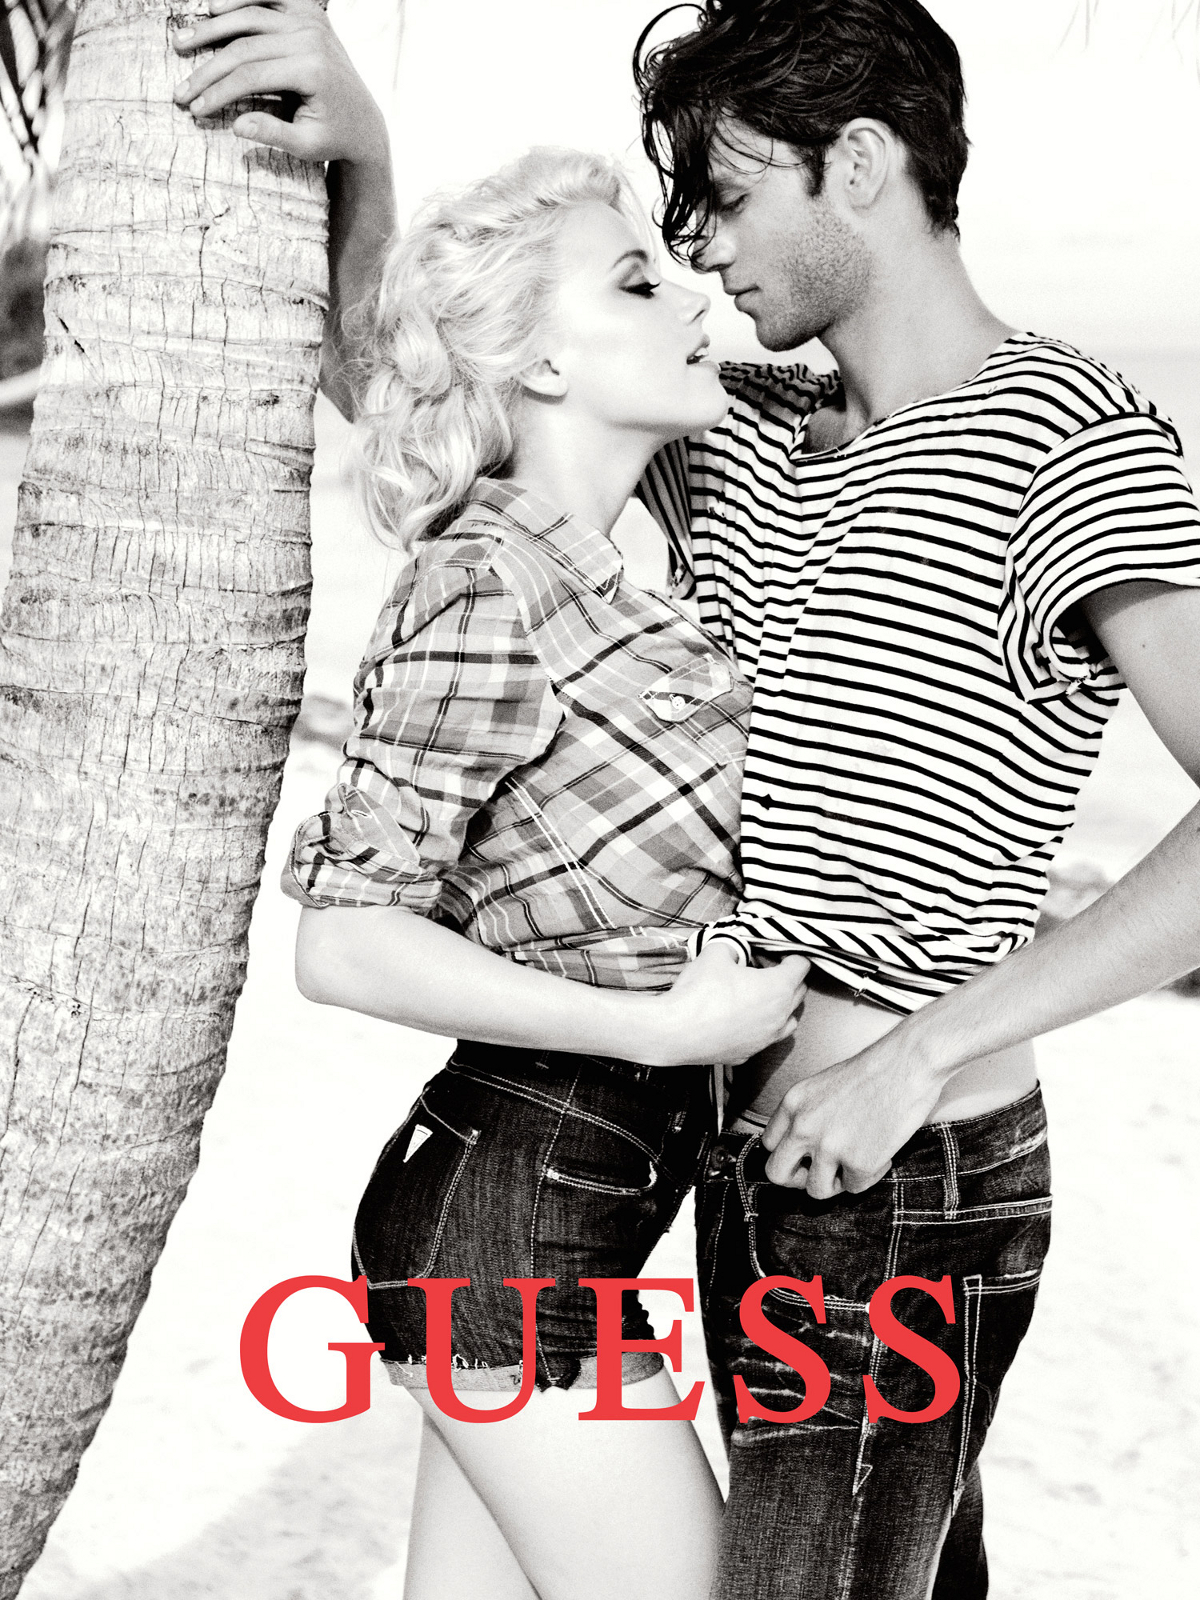 GUESS Official | Global Lifestyle Brand for Women, Men & Kids